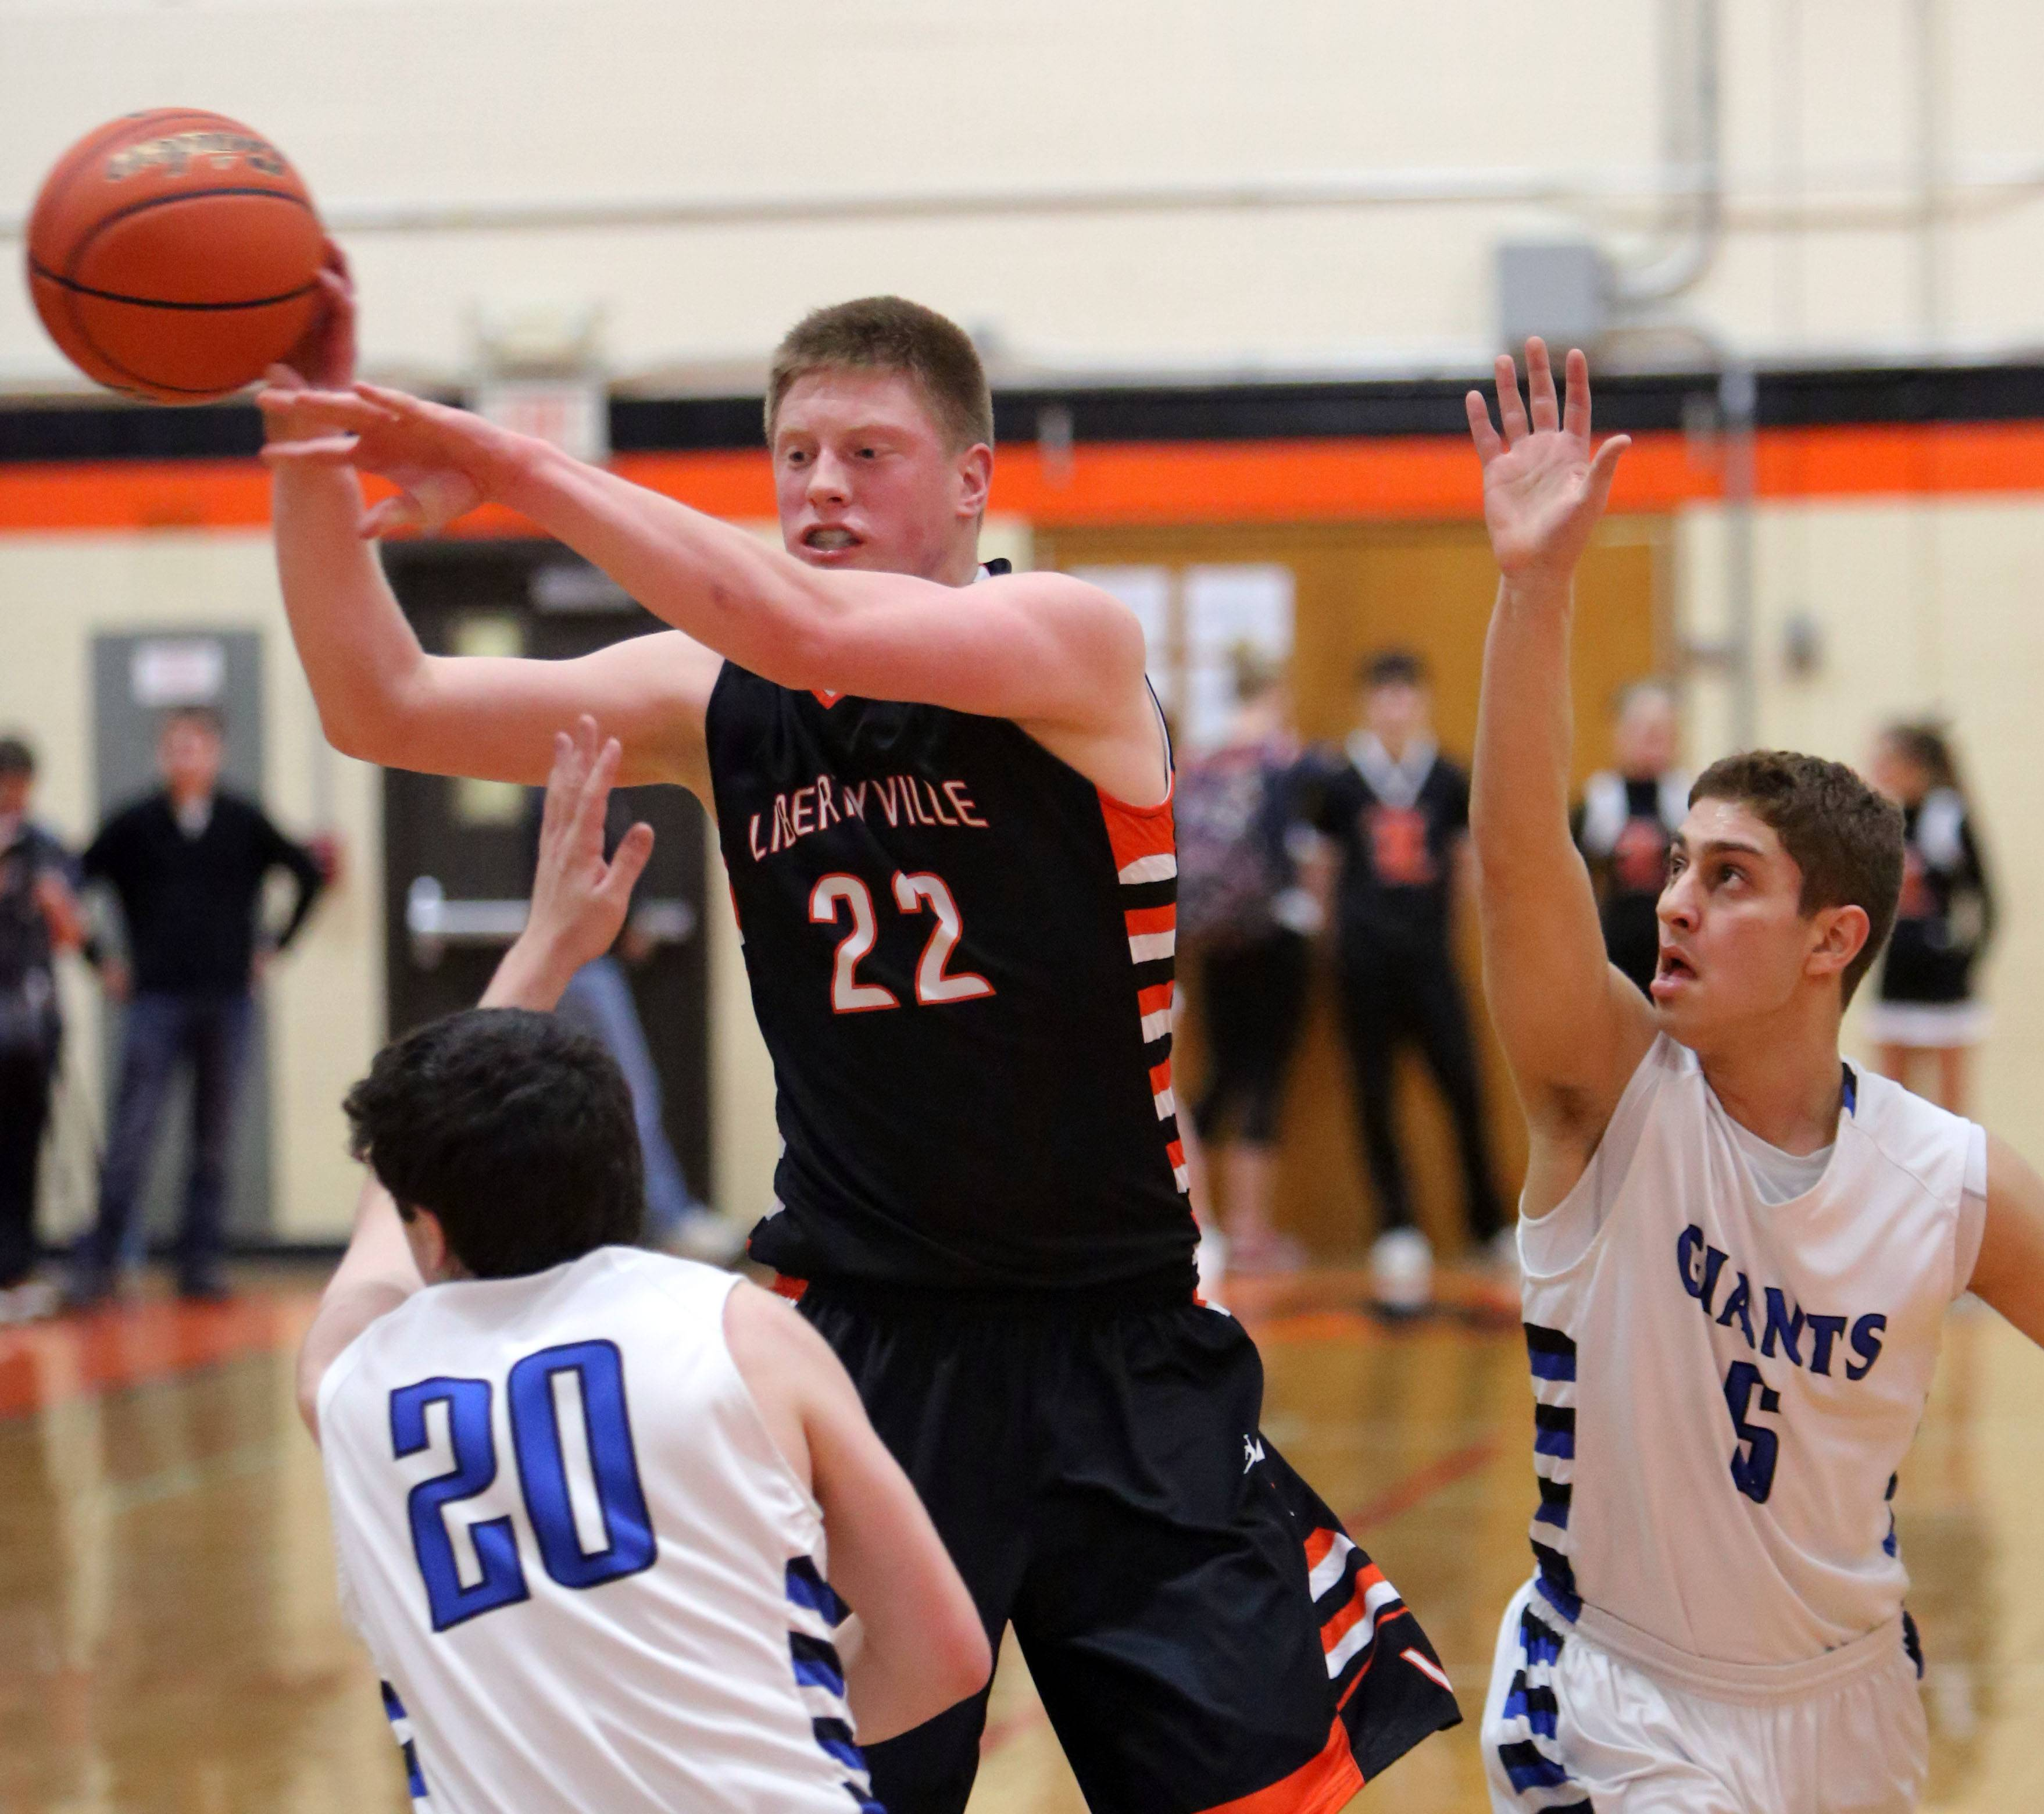 Libertyville's Jack Lipp (22) passes around Highland Park's Jacon Iden, left, and Max Goshen during Class 4A regional semifinal play at Libertyville on Tuesday.